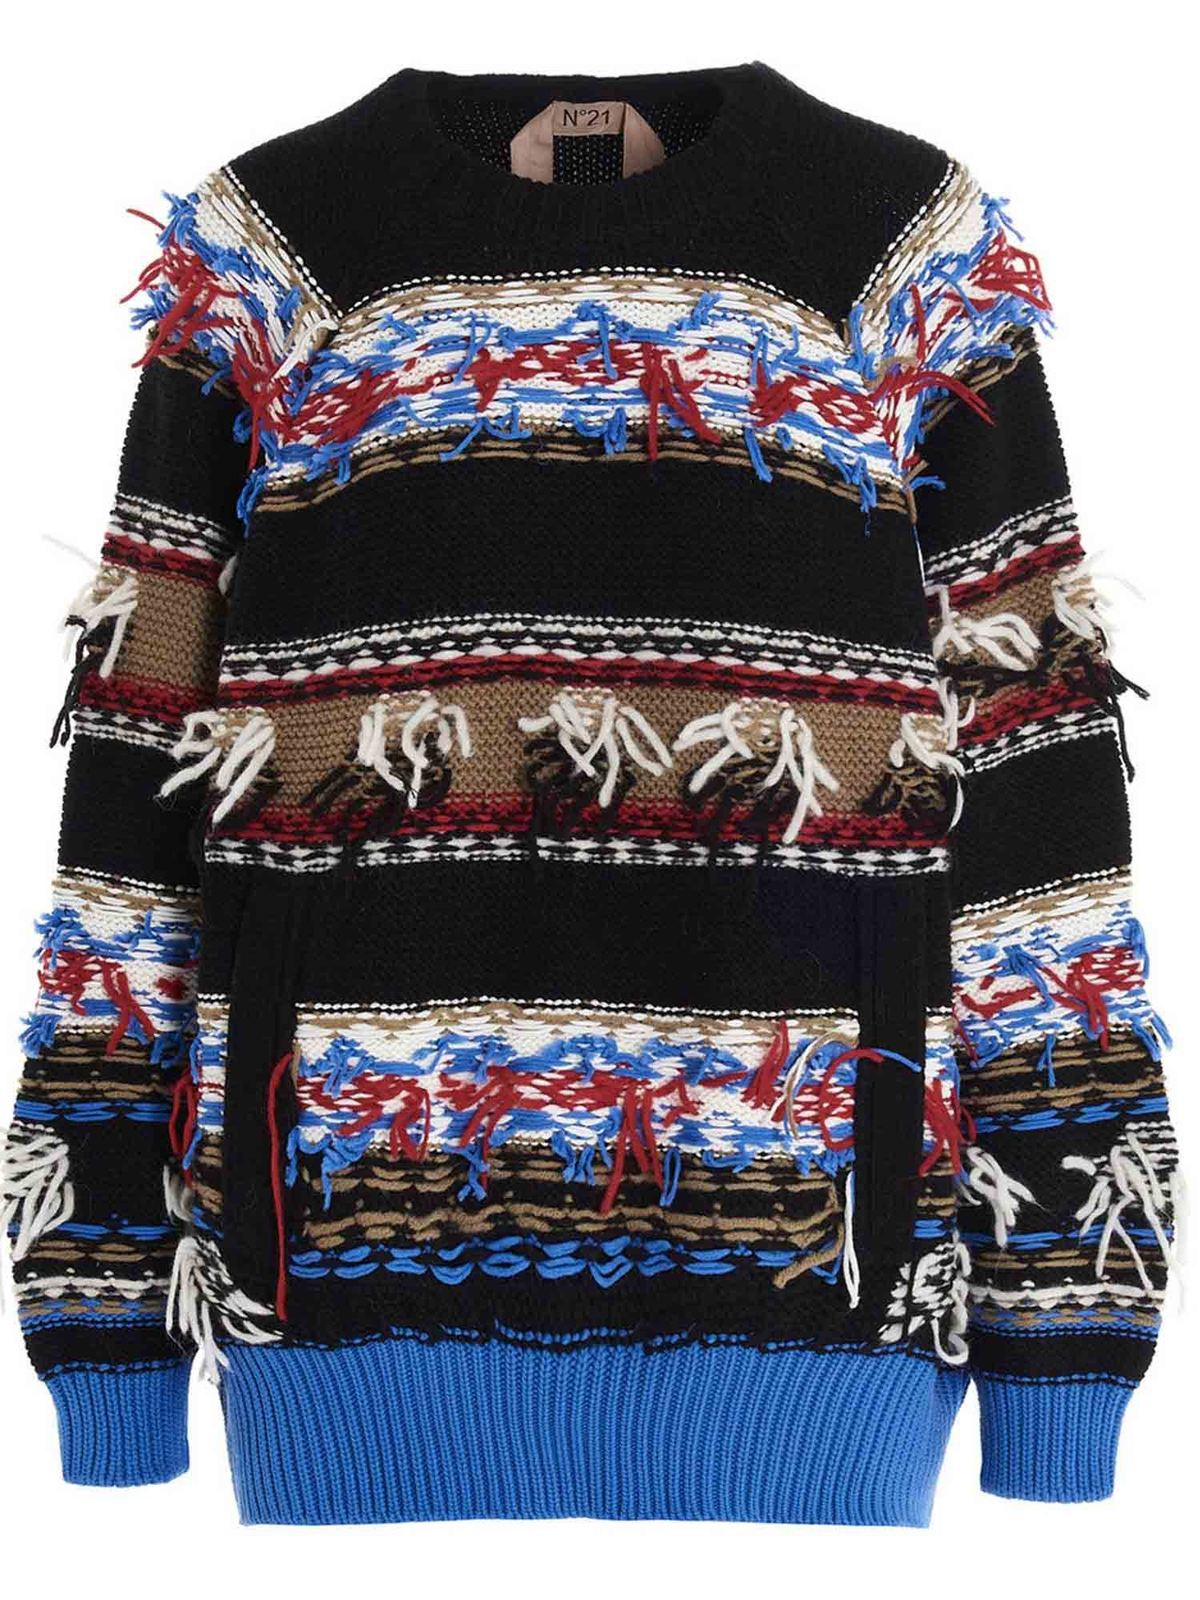 N°21 JACQUARD-EMBELLISHED PULLOVER IN MULTICOLOR